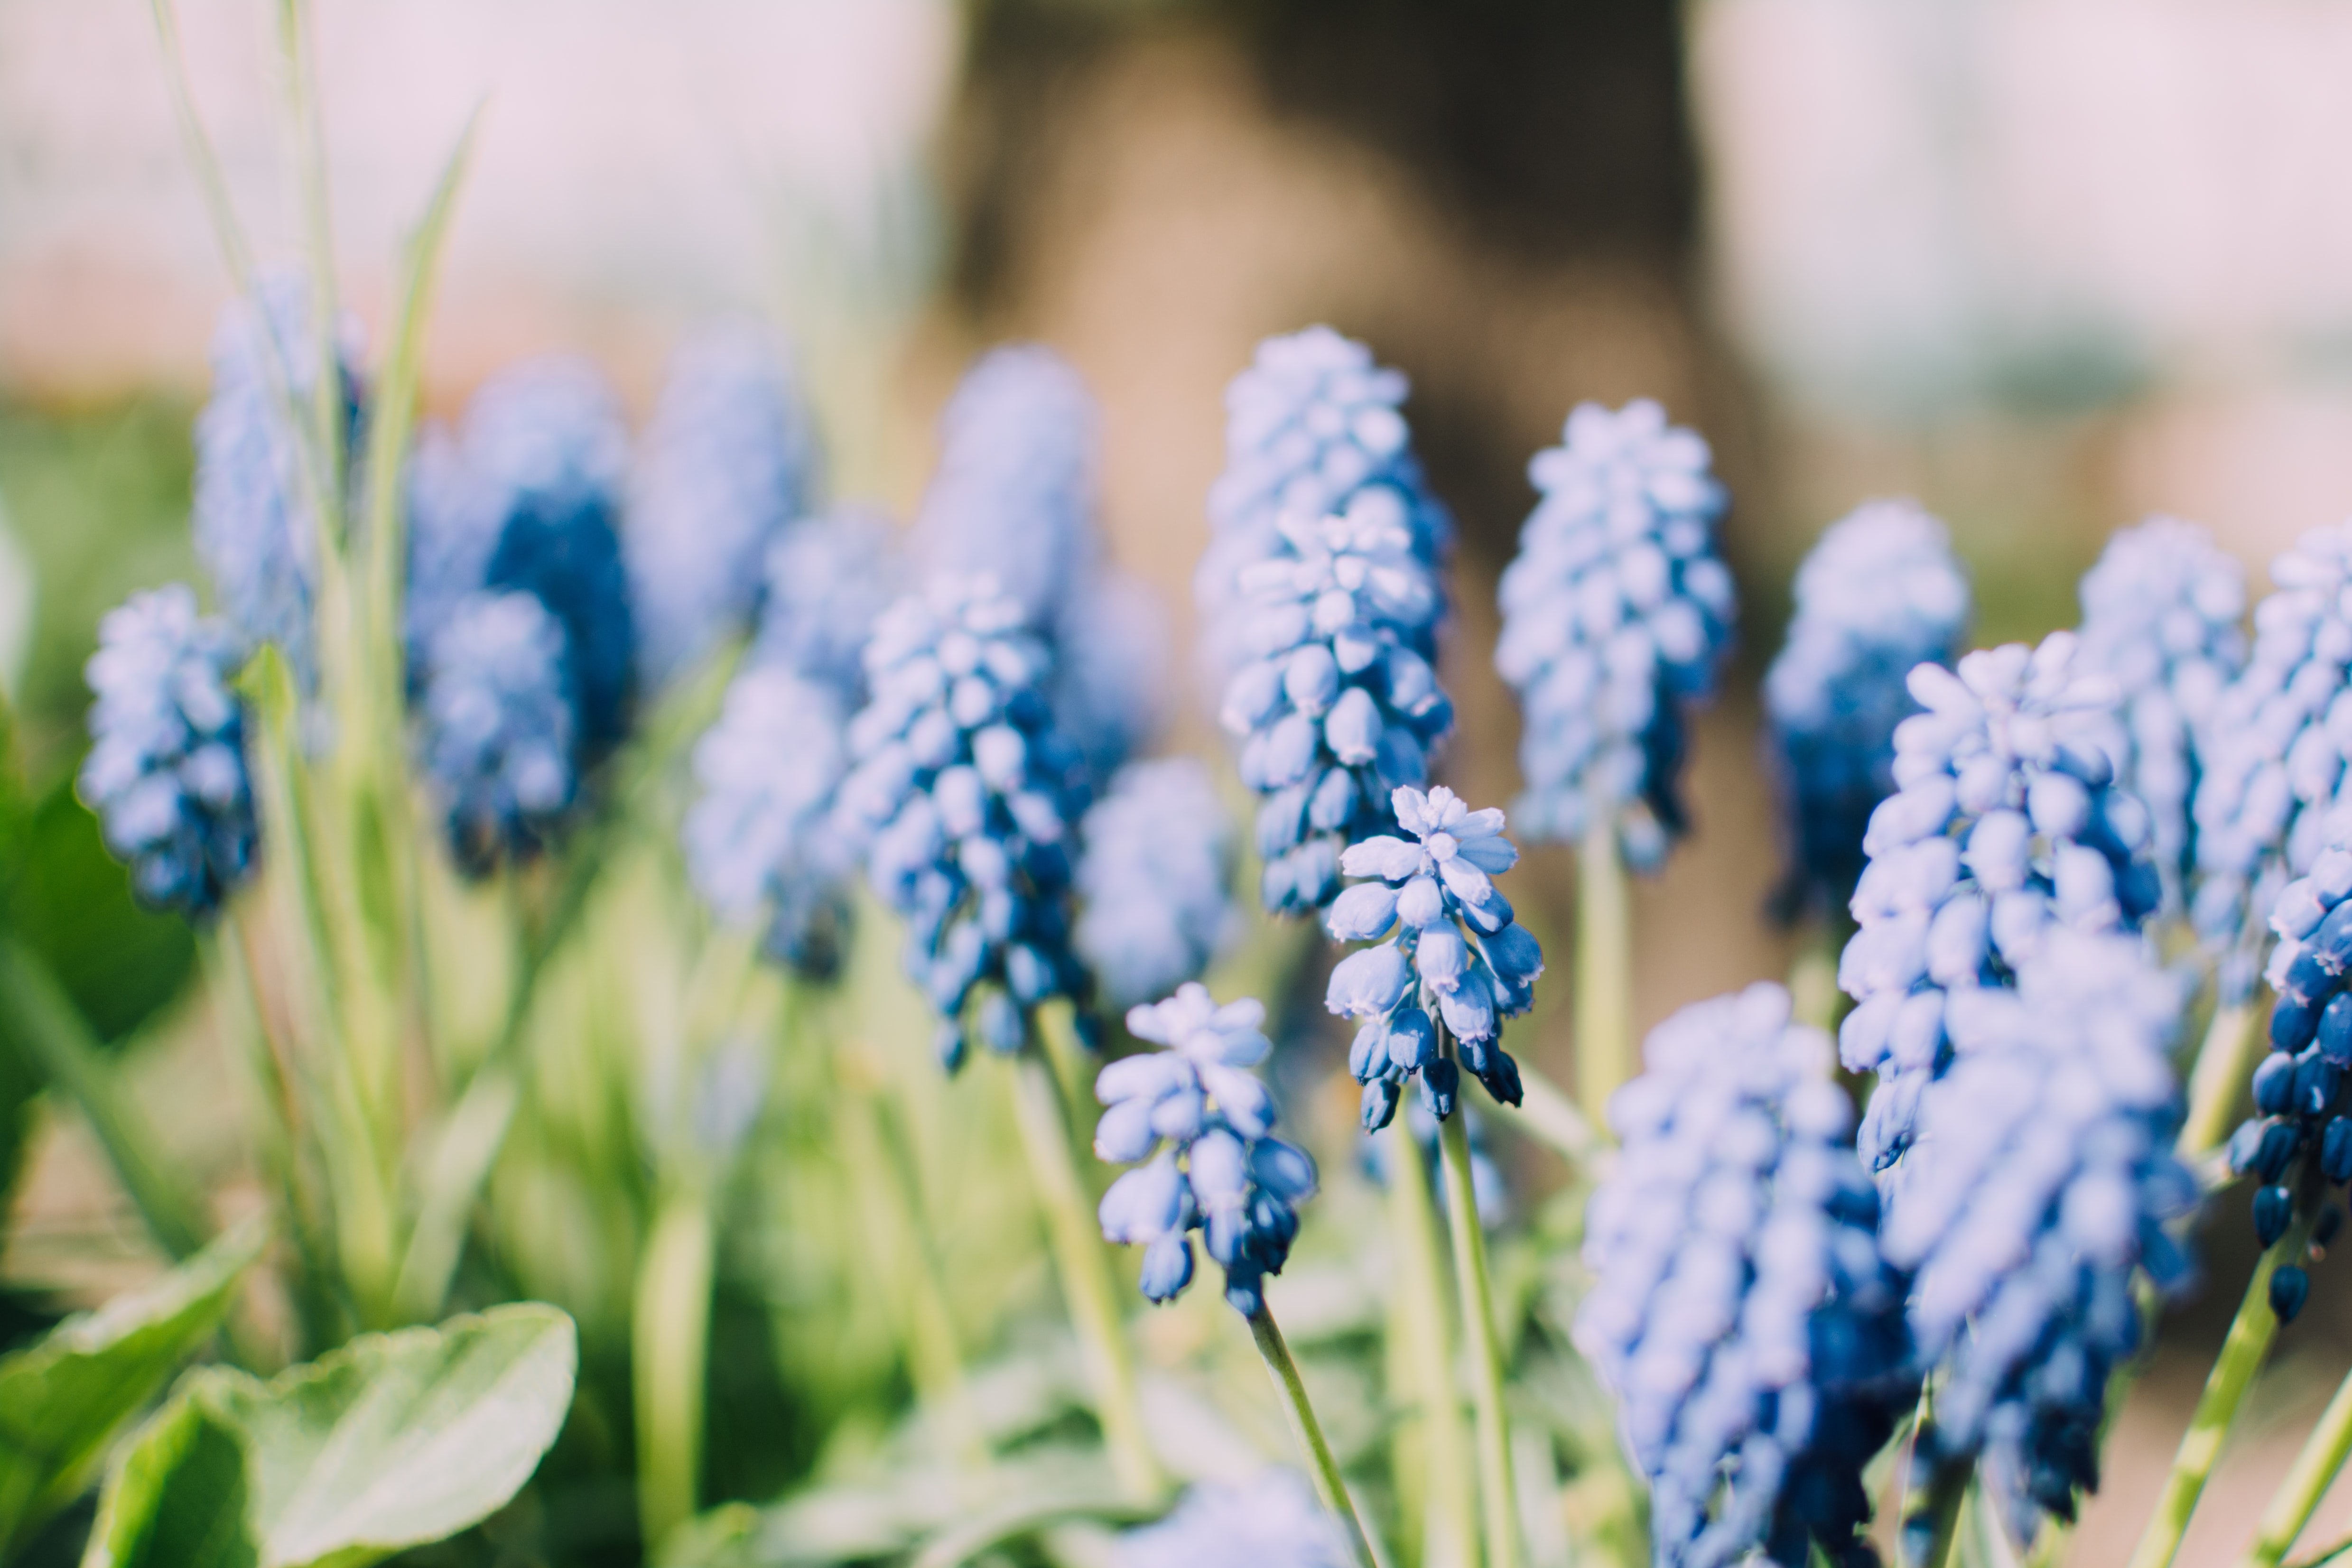 macro photography of blue flowers at daytime